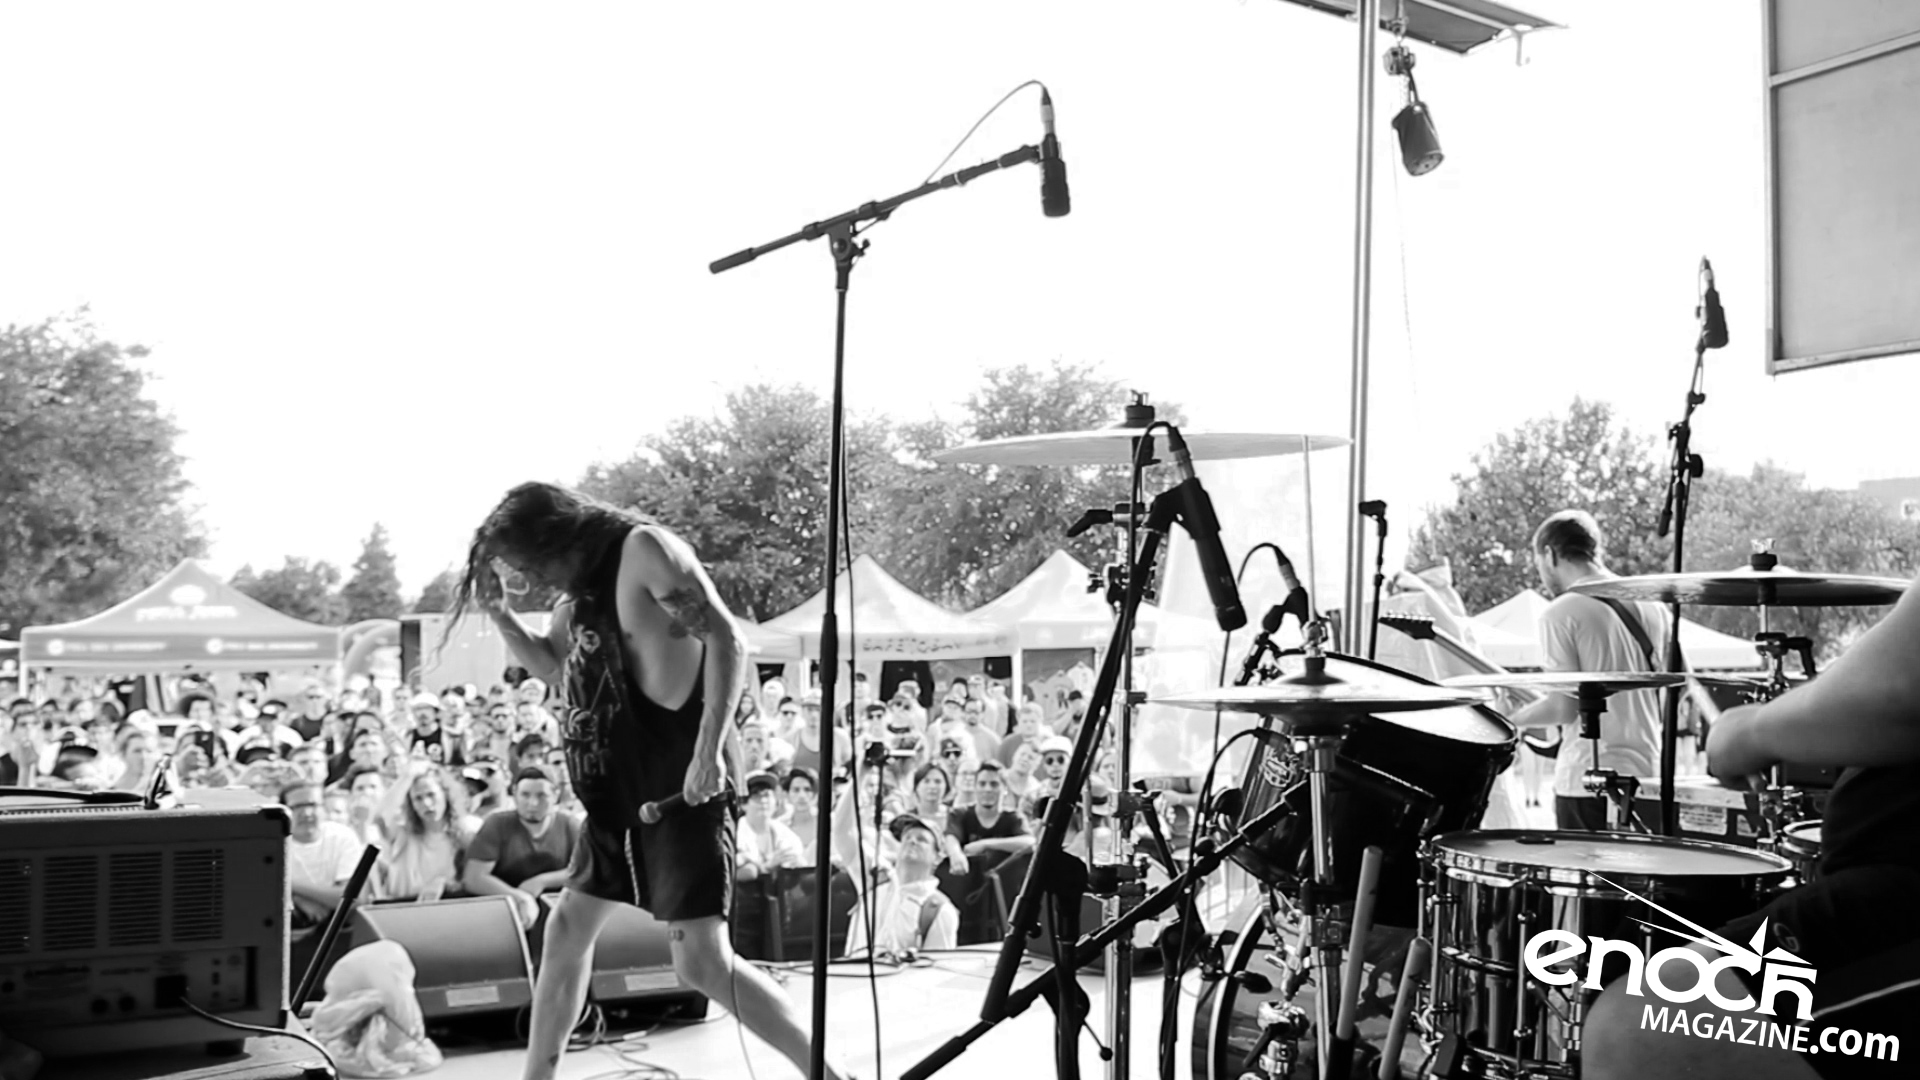 Silent Planet live 2016 Vans Warped Tour in Houston, TX